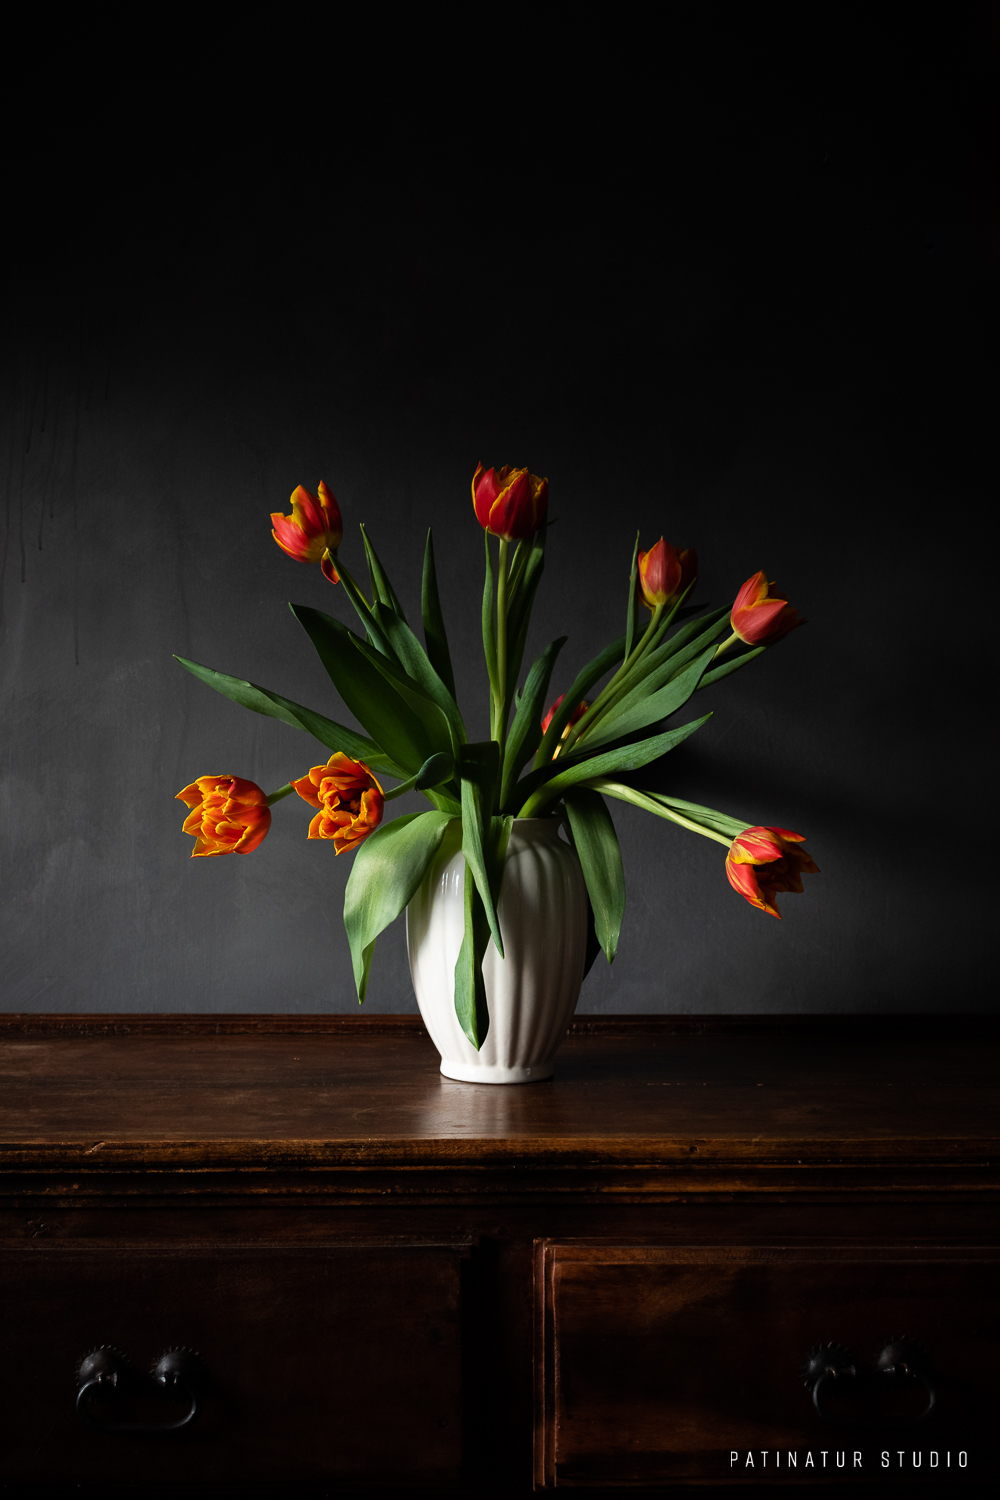 Photo art | Dark and moody still life with red and yellow tulips in white ceramic vase